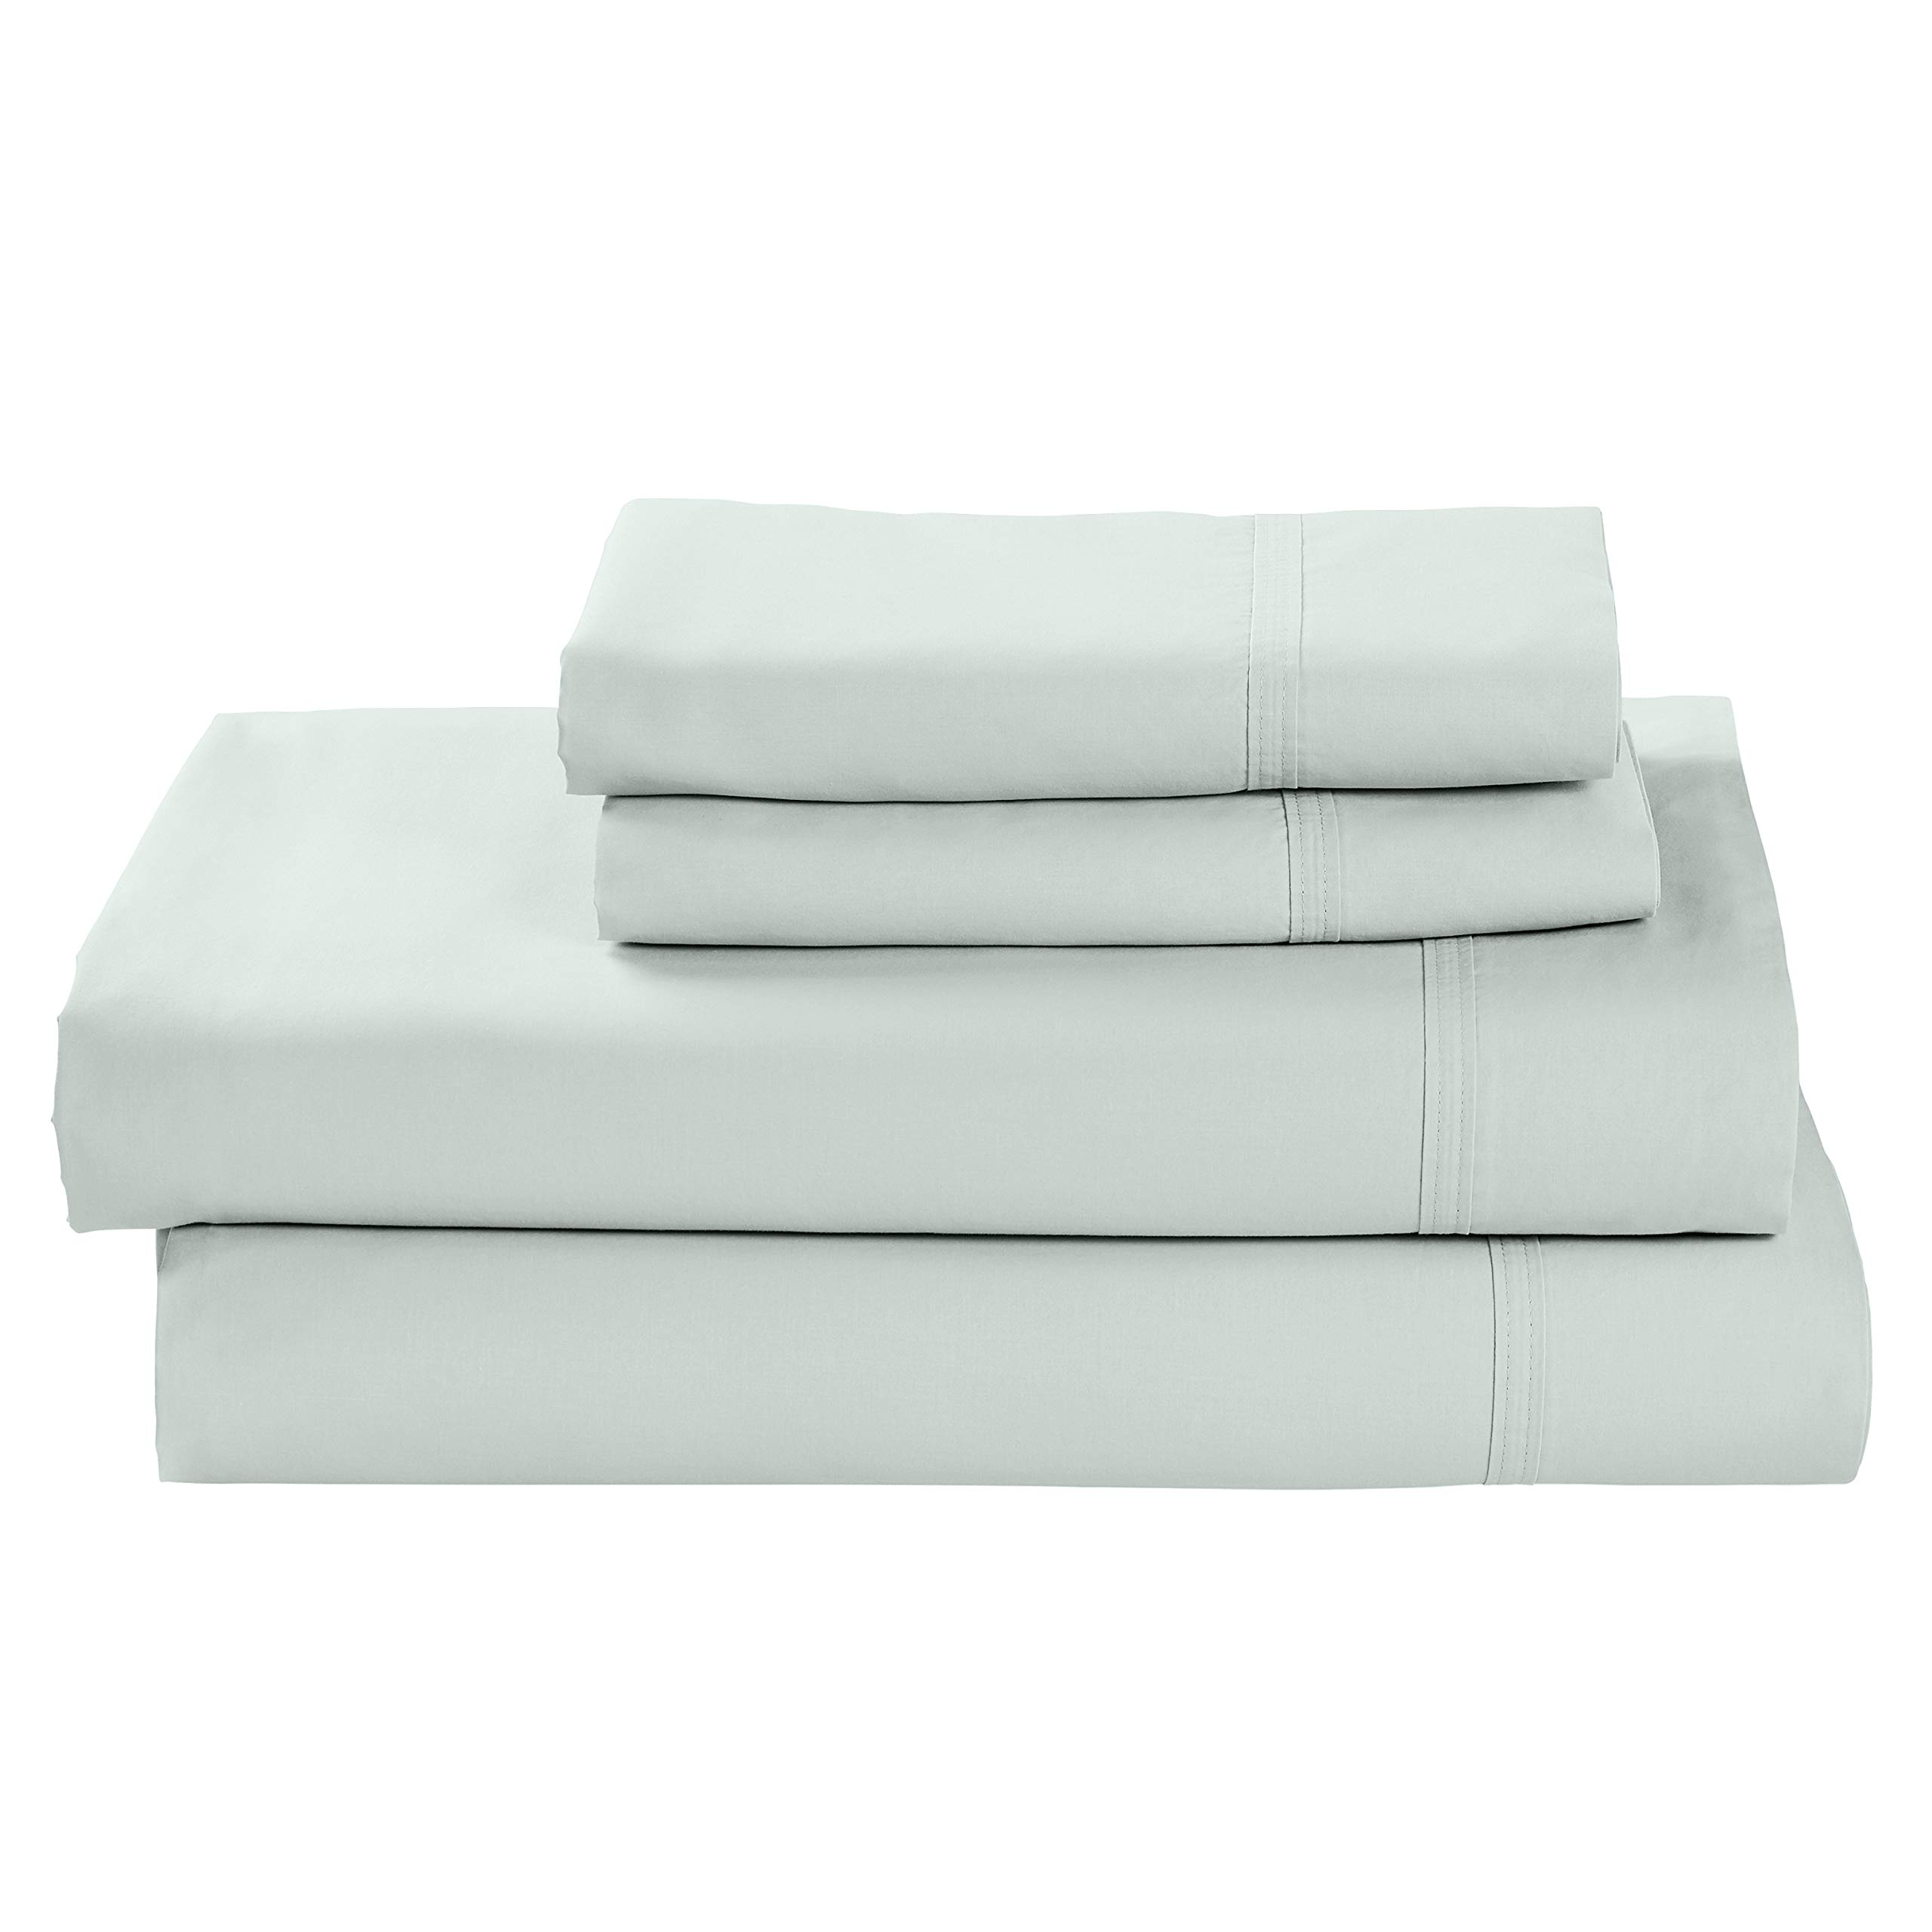 Rivet Percale 100% Organic Cotton Bed Sheet Set, Easy Care, Queen, Mint